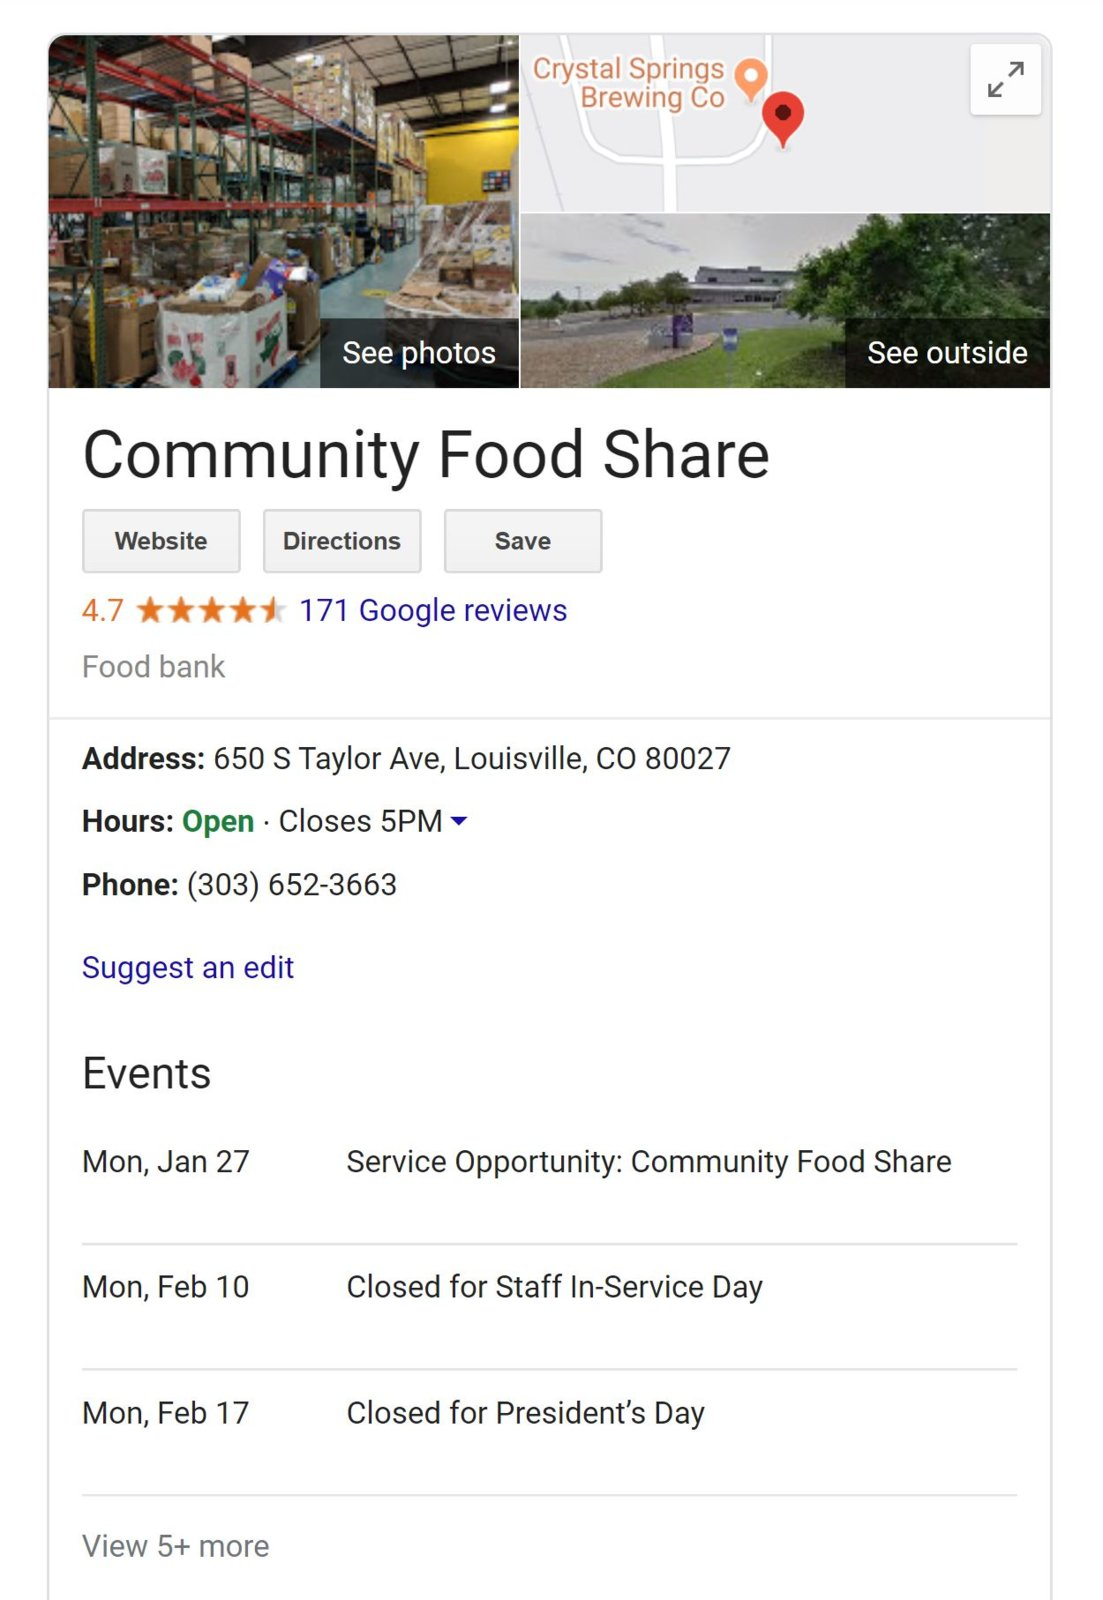 Community Food Share GMB.JPG